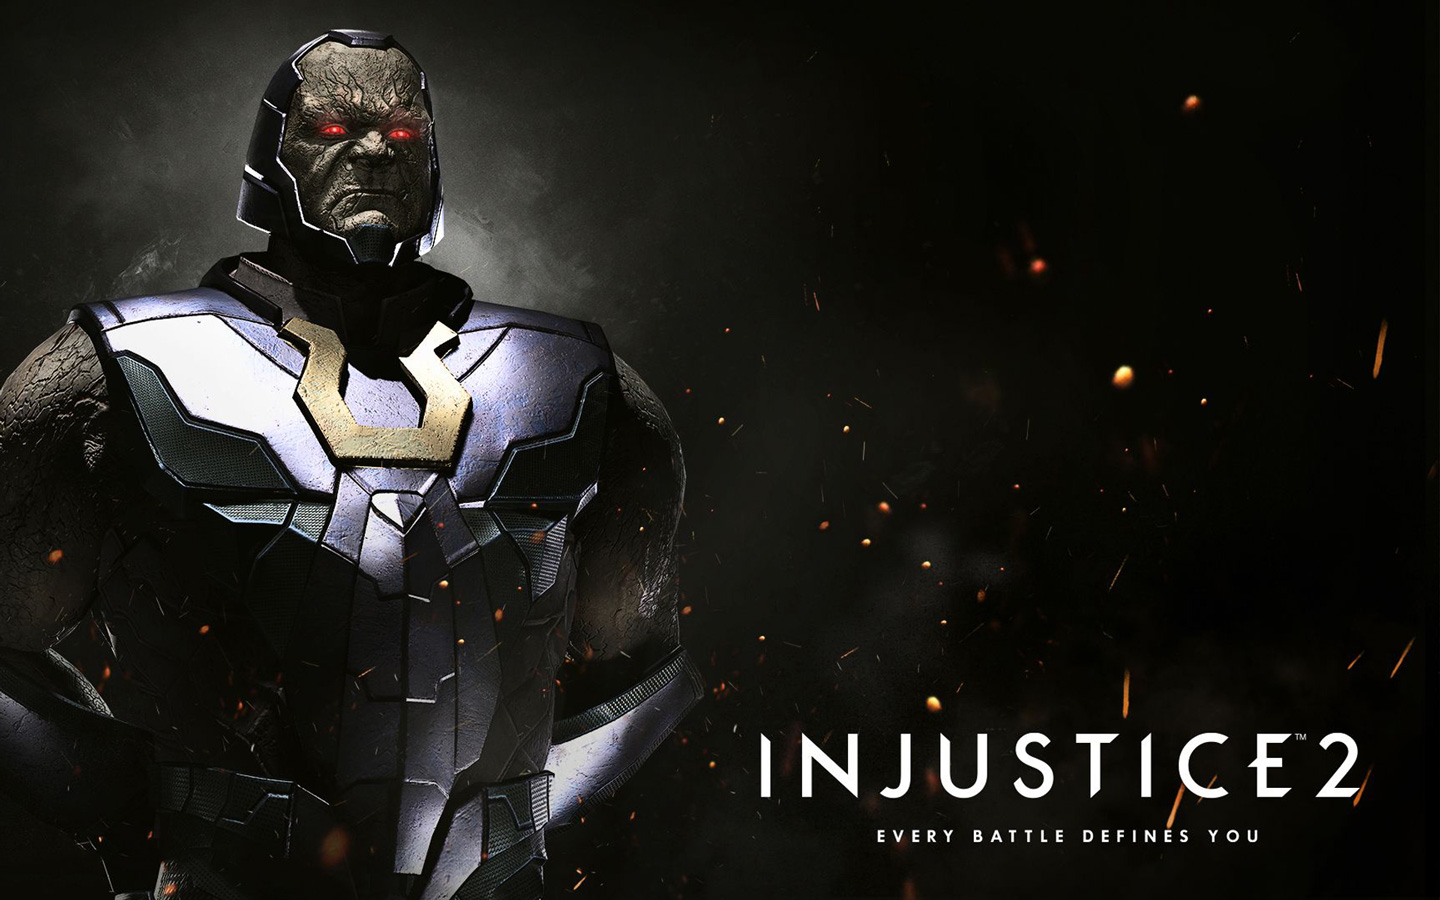 Free Injustice 2 Wallpaper in 1440x900